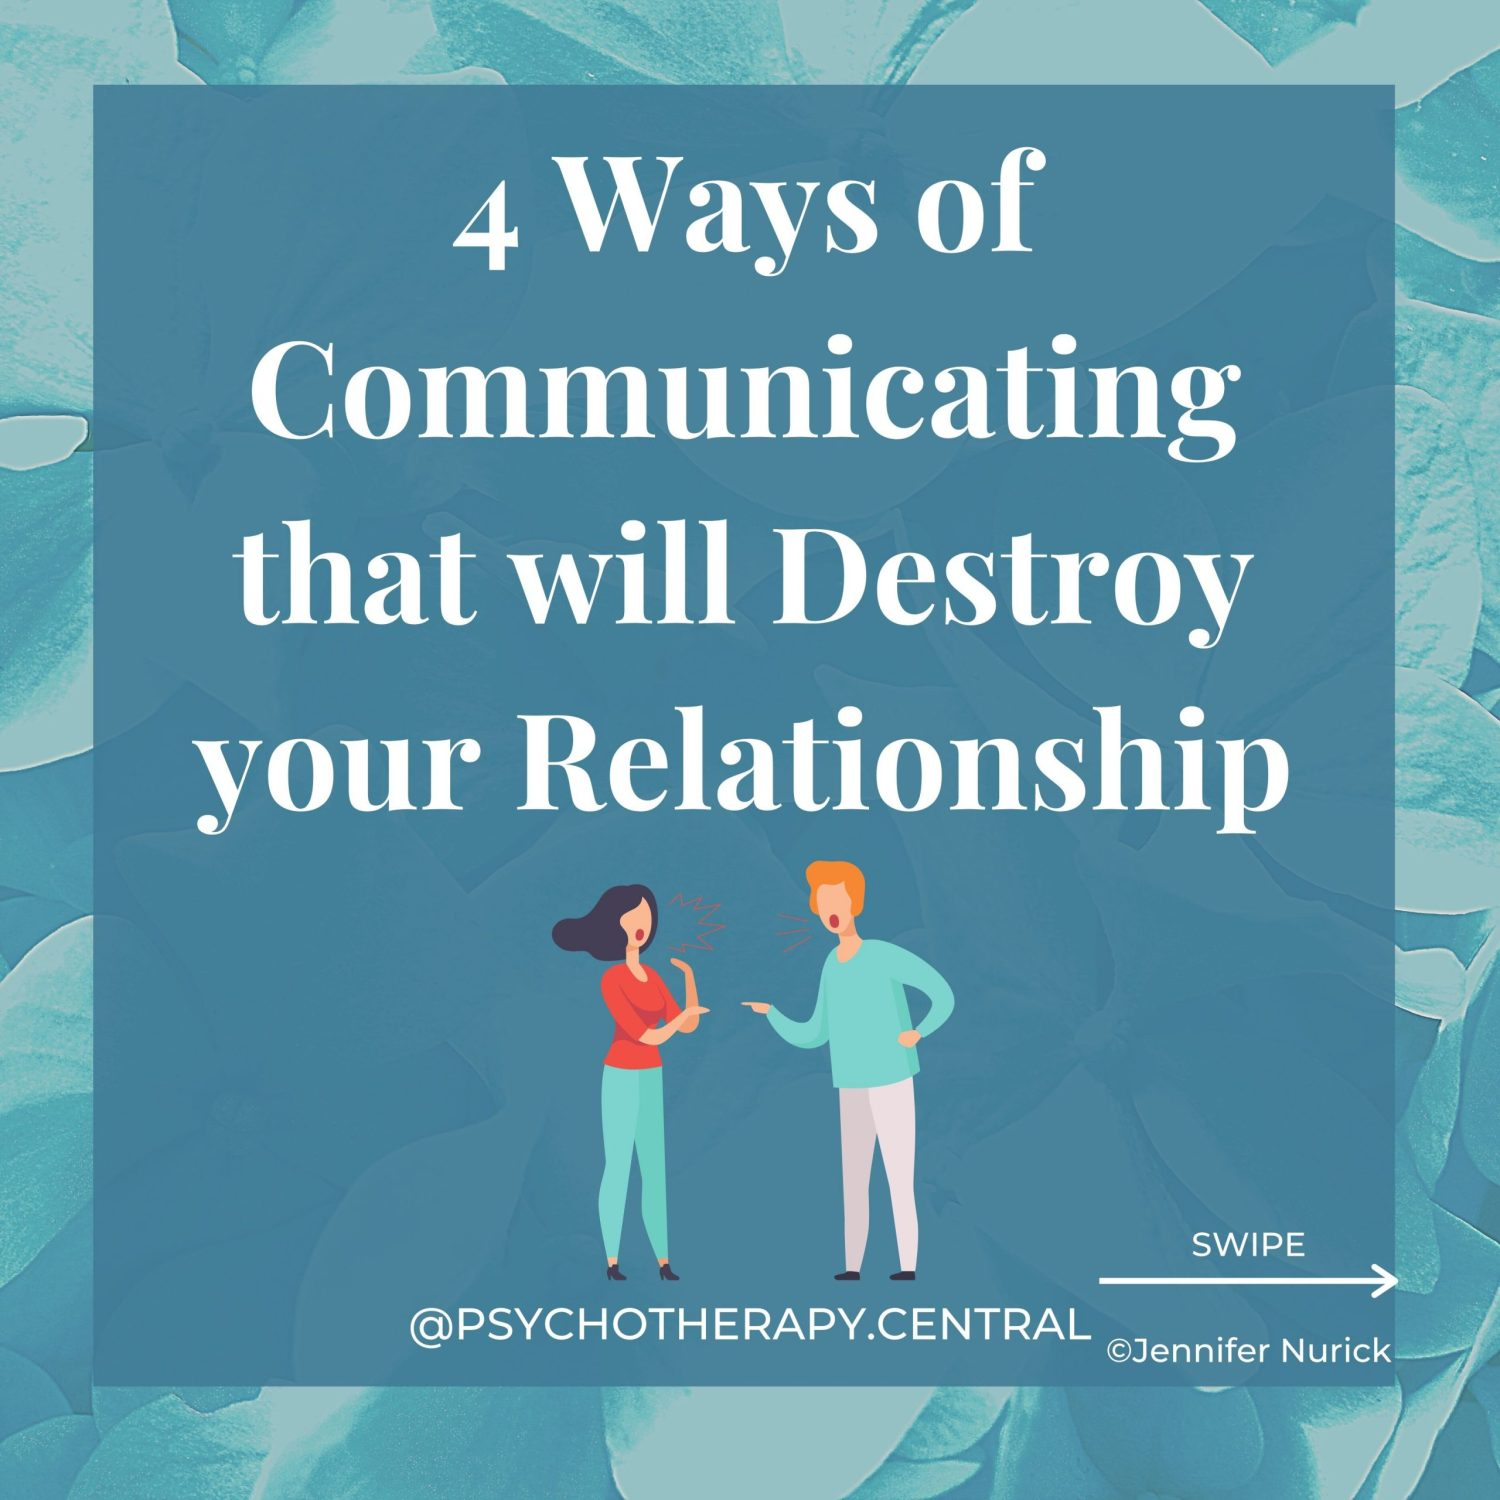 4 Ways of Communicating that will Destroy your Relationship